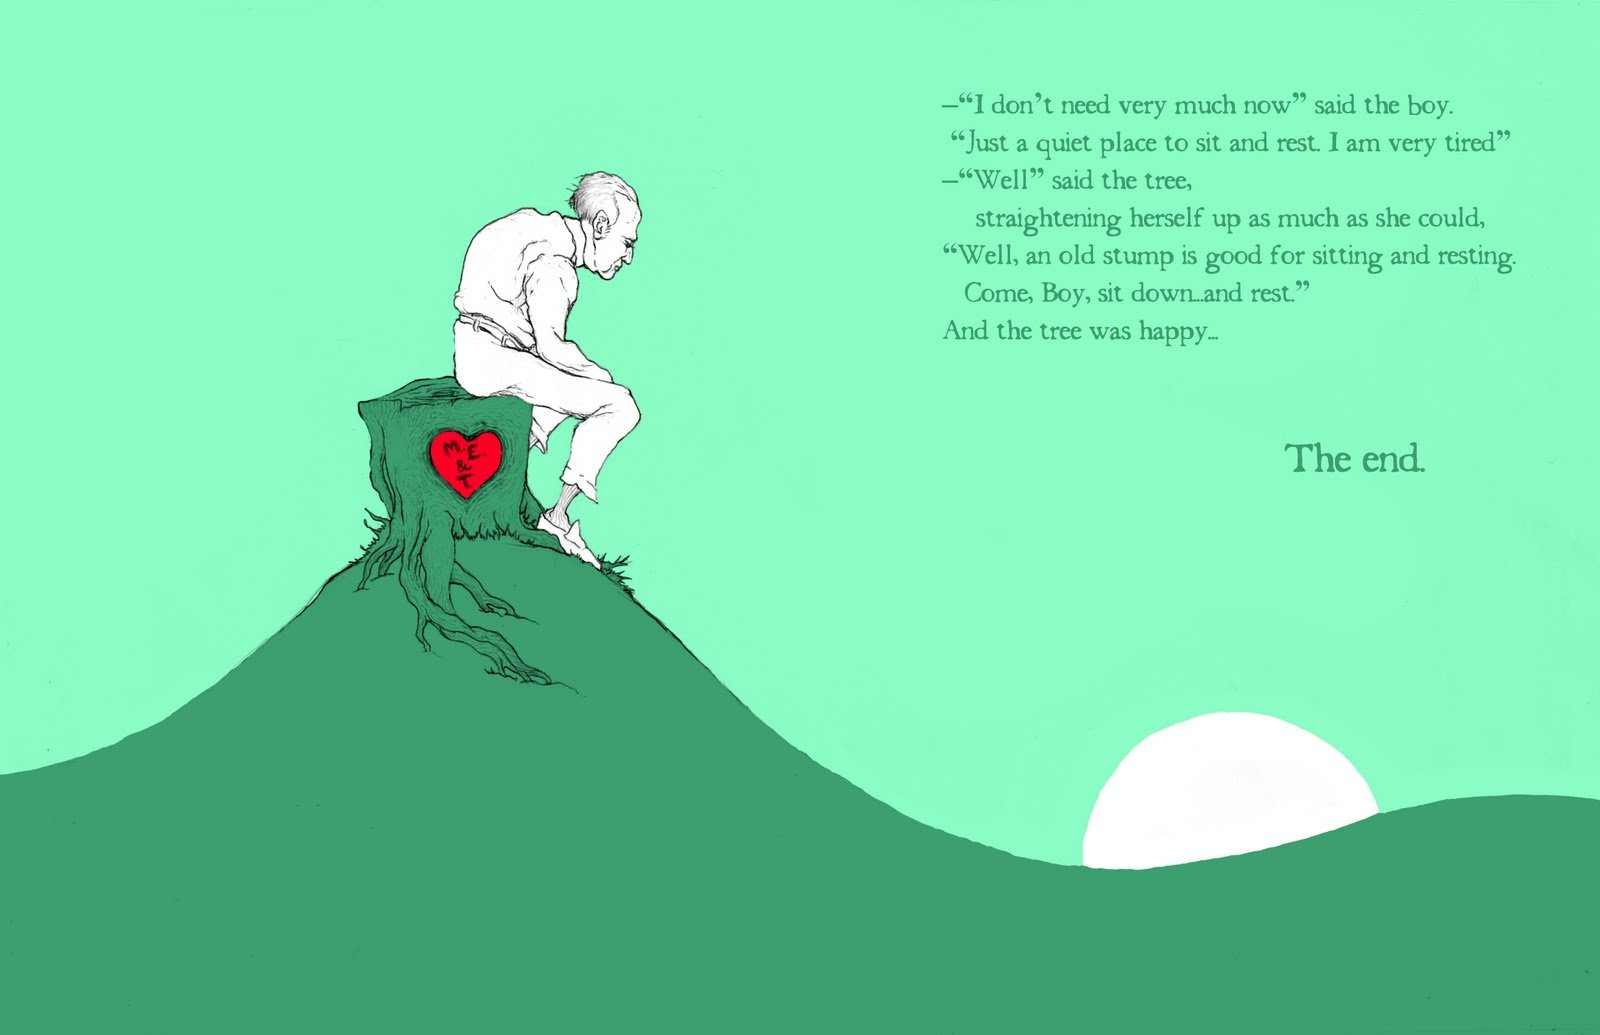 Short Shel Silverstein Quotes: Giving Tree Shel Silverstein Quotes. QuotesGram